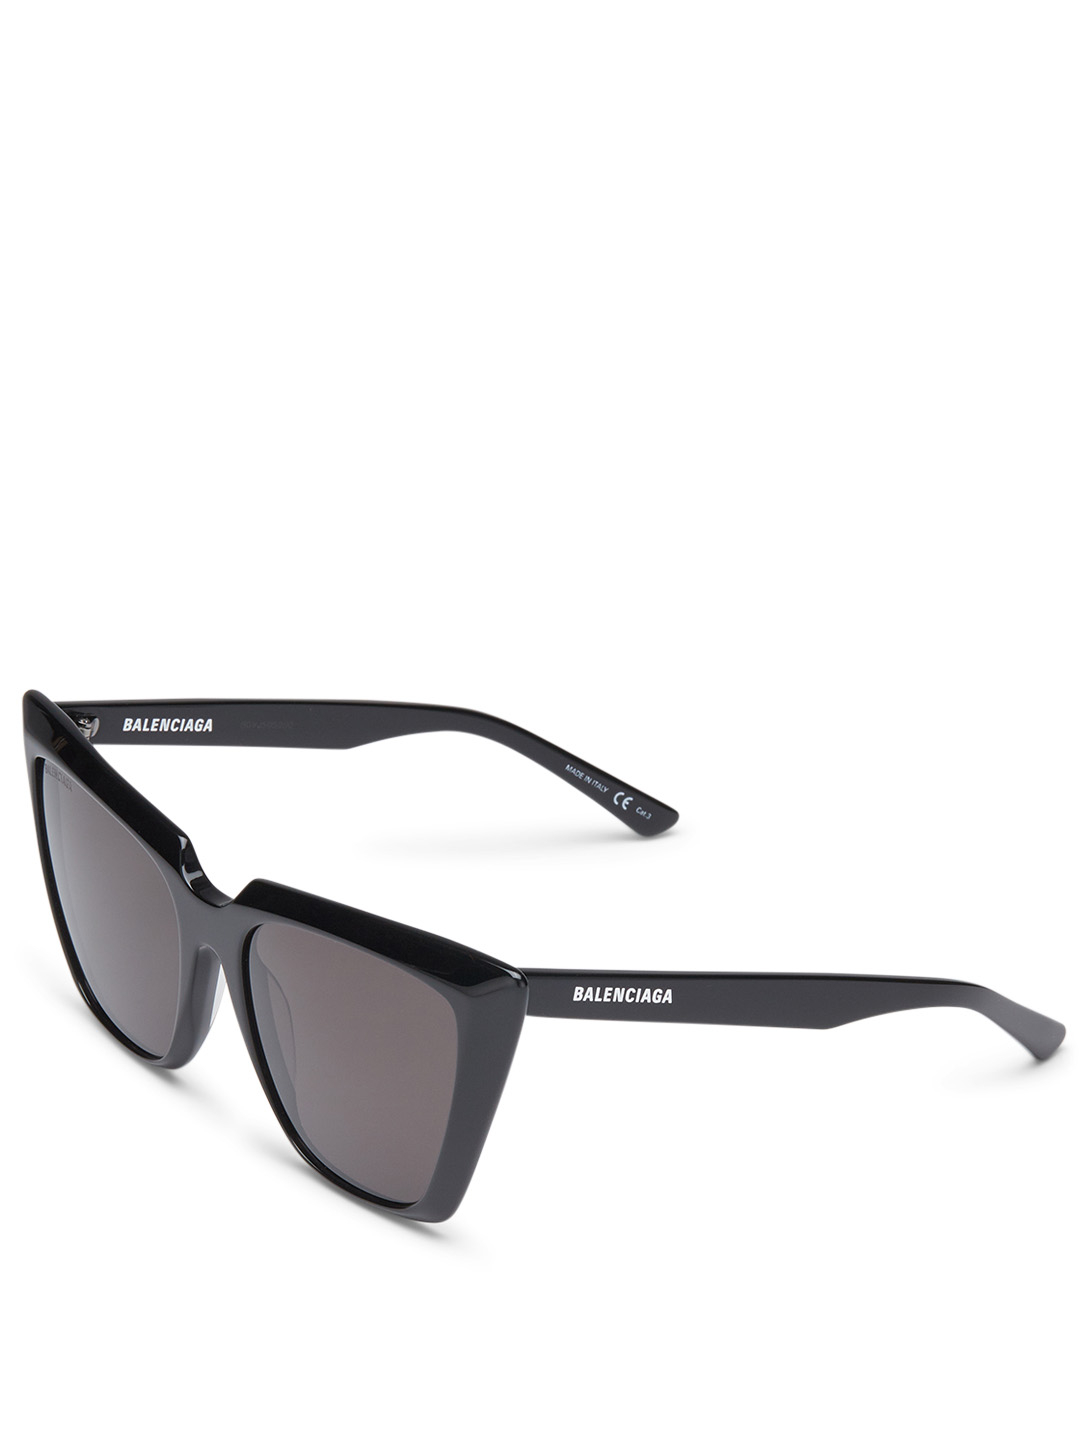 BALENCIAGA Tip Cat Eye Sunglasses Women's Black